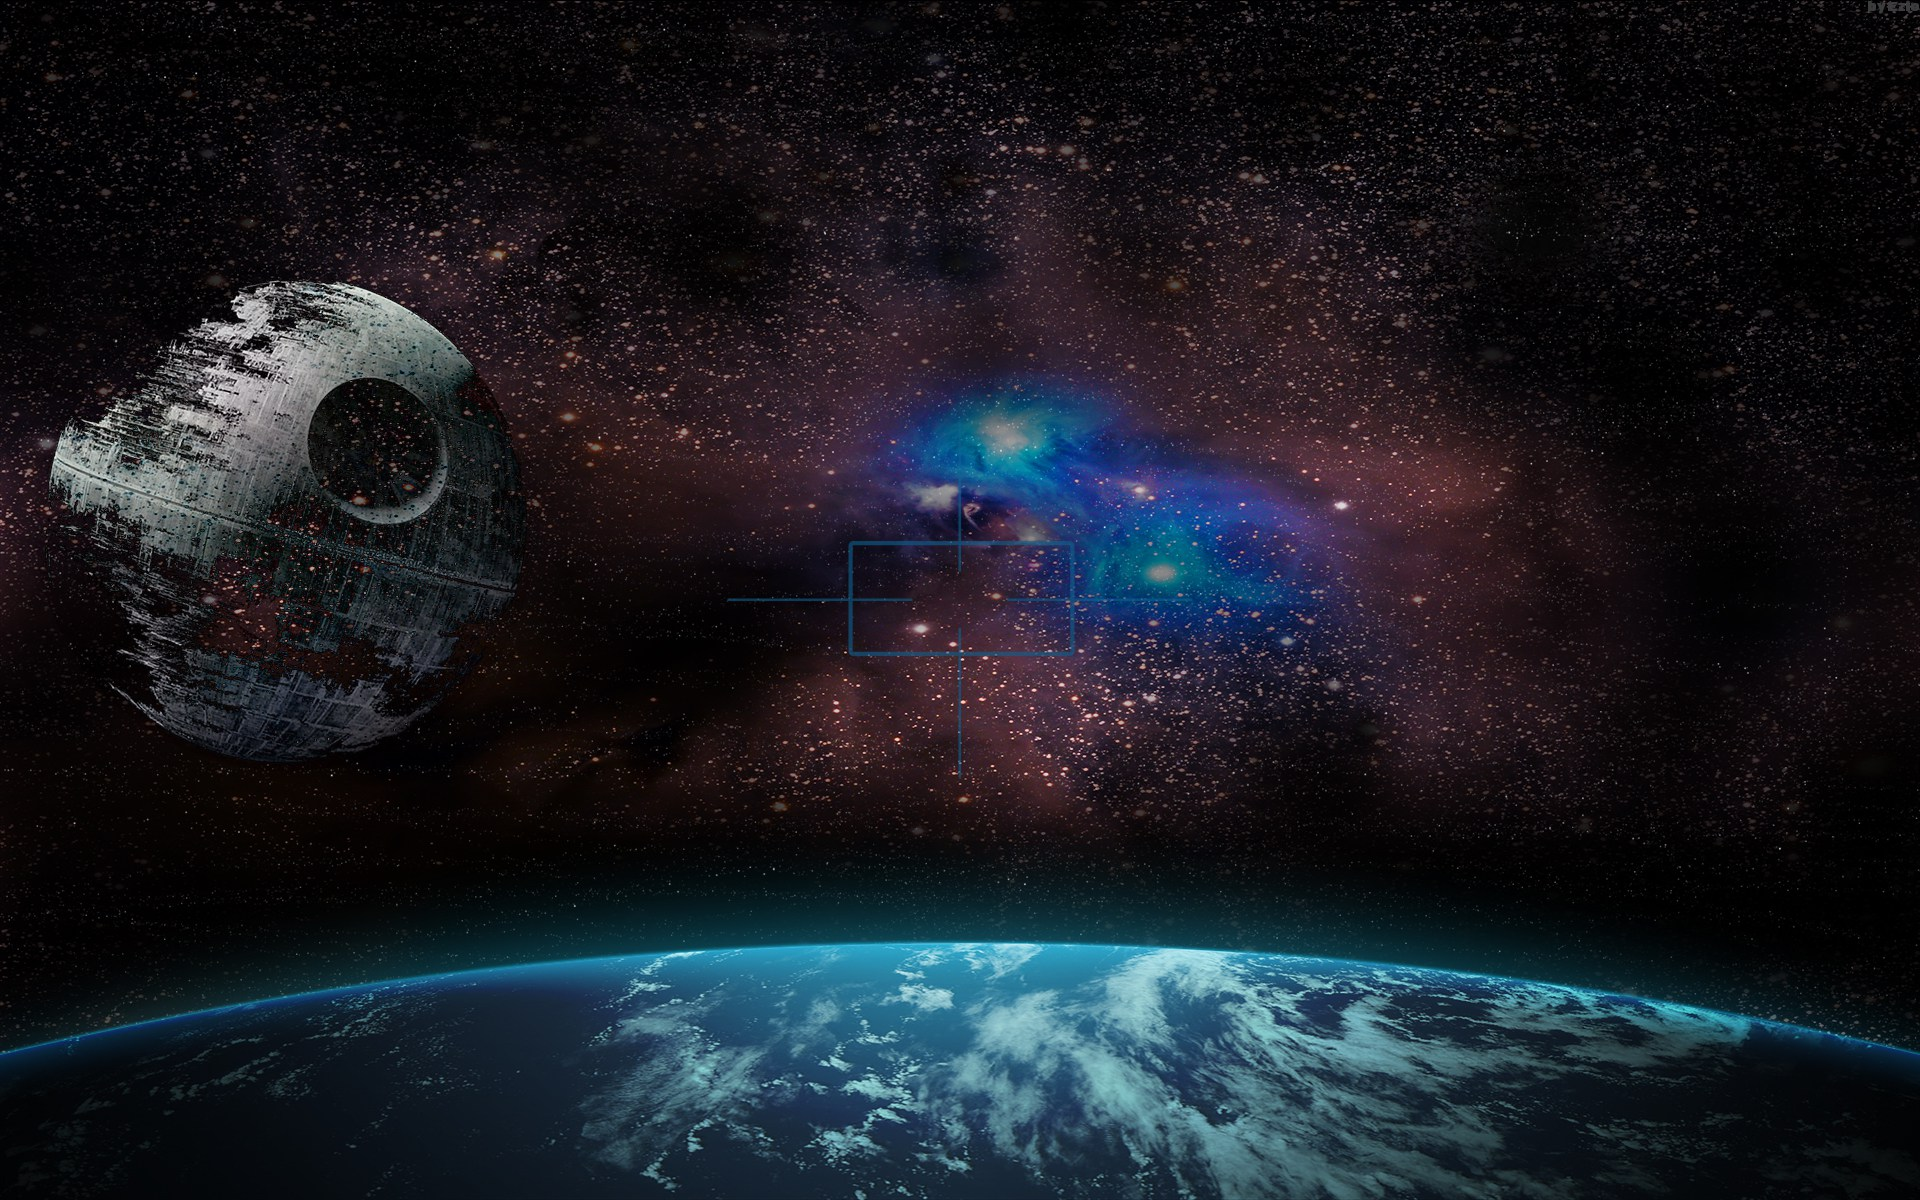 Star Wars Death Star Hd Backgrounds Star Wars Death Star Background 323910 Hd Wallpaper Backgrounds Download